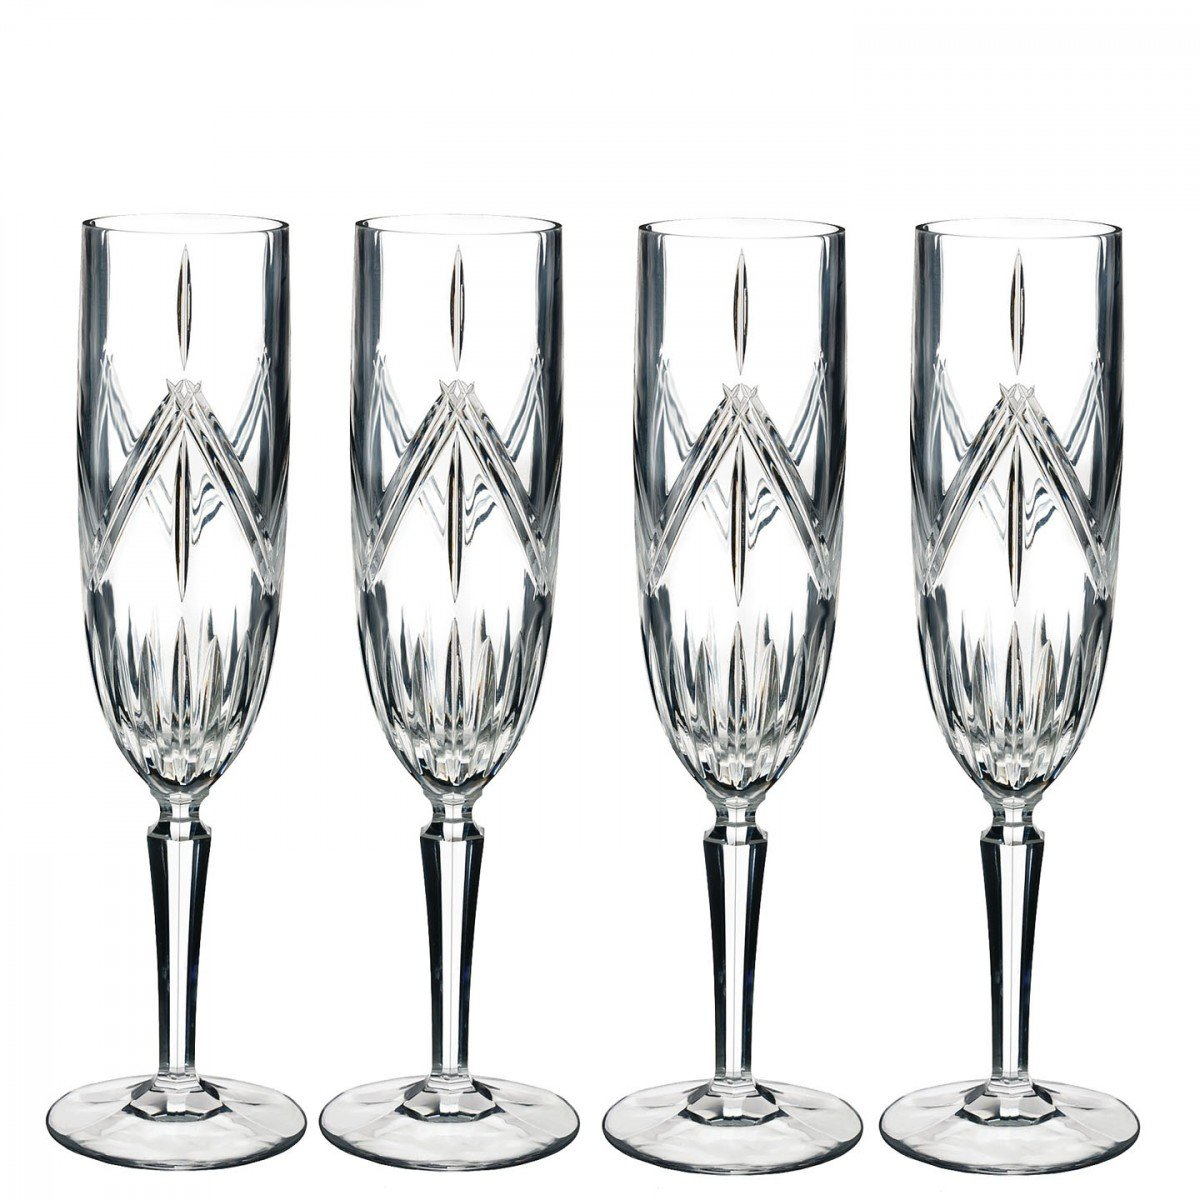 Marquis By Waterford 40032083 Lacey Flute Set of 4, 8 ounce, Clear